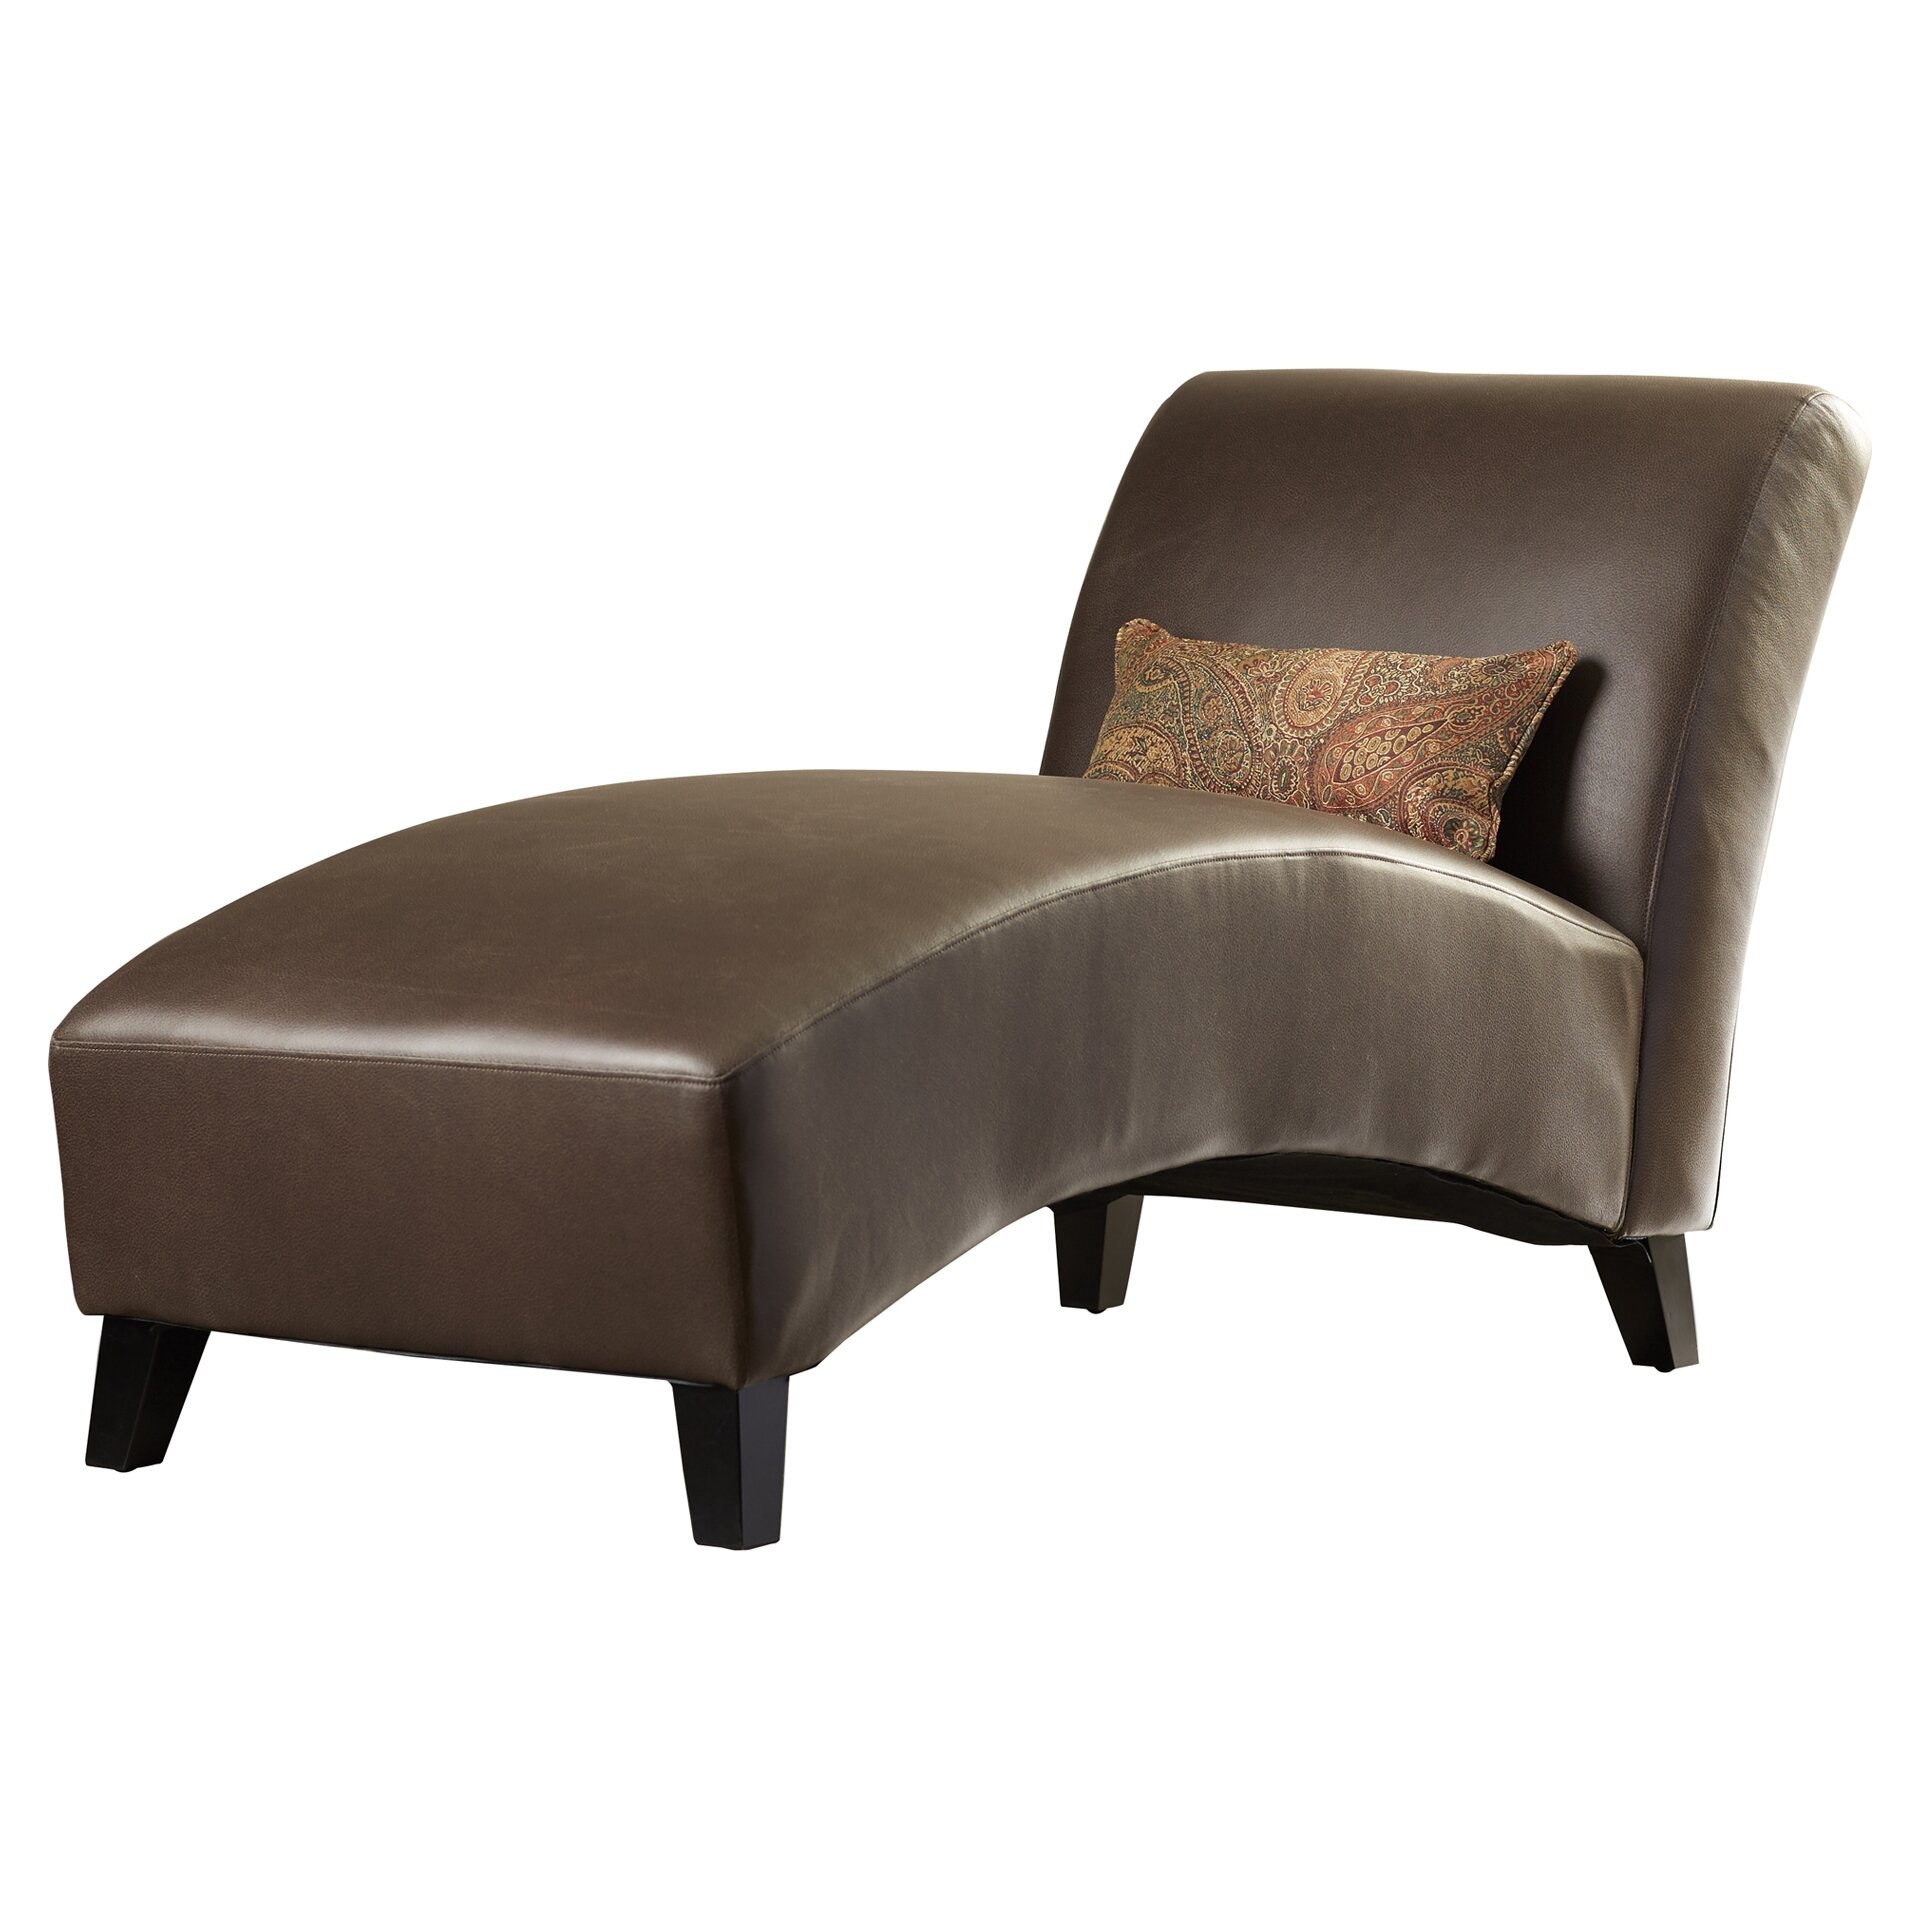 Wade logan amber chaise lounge reviews wayfair for Chaise and lounge